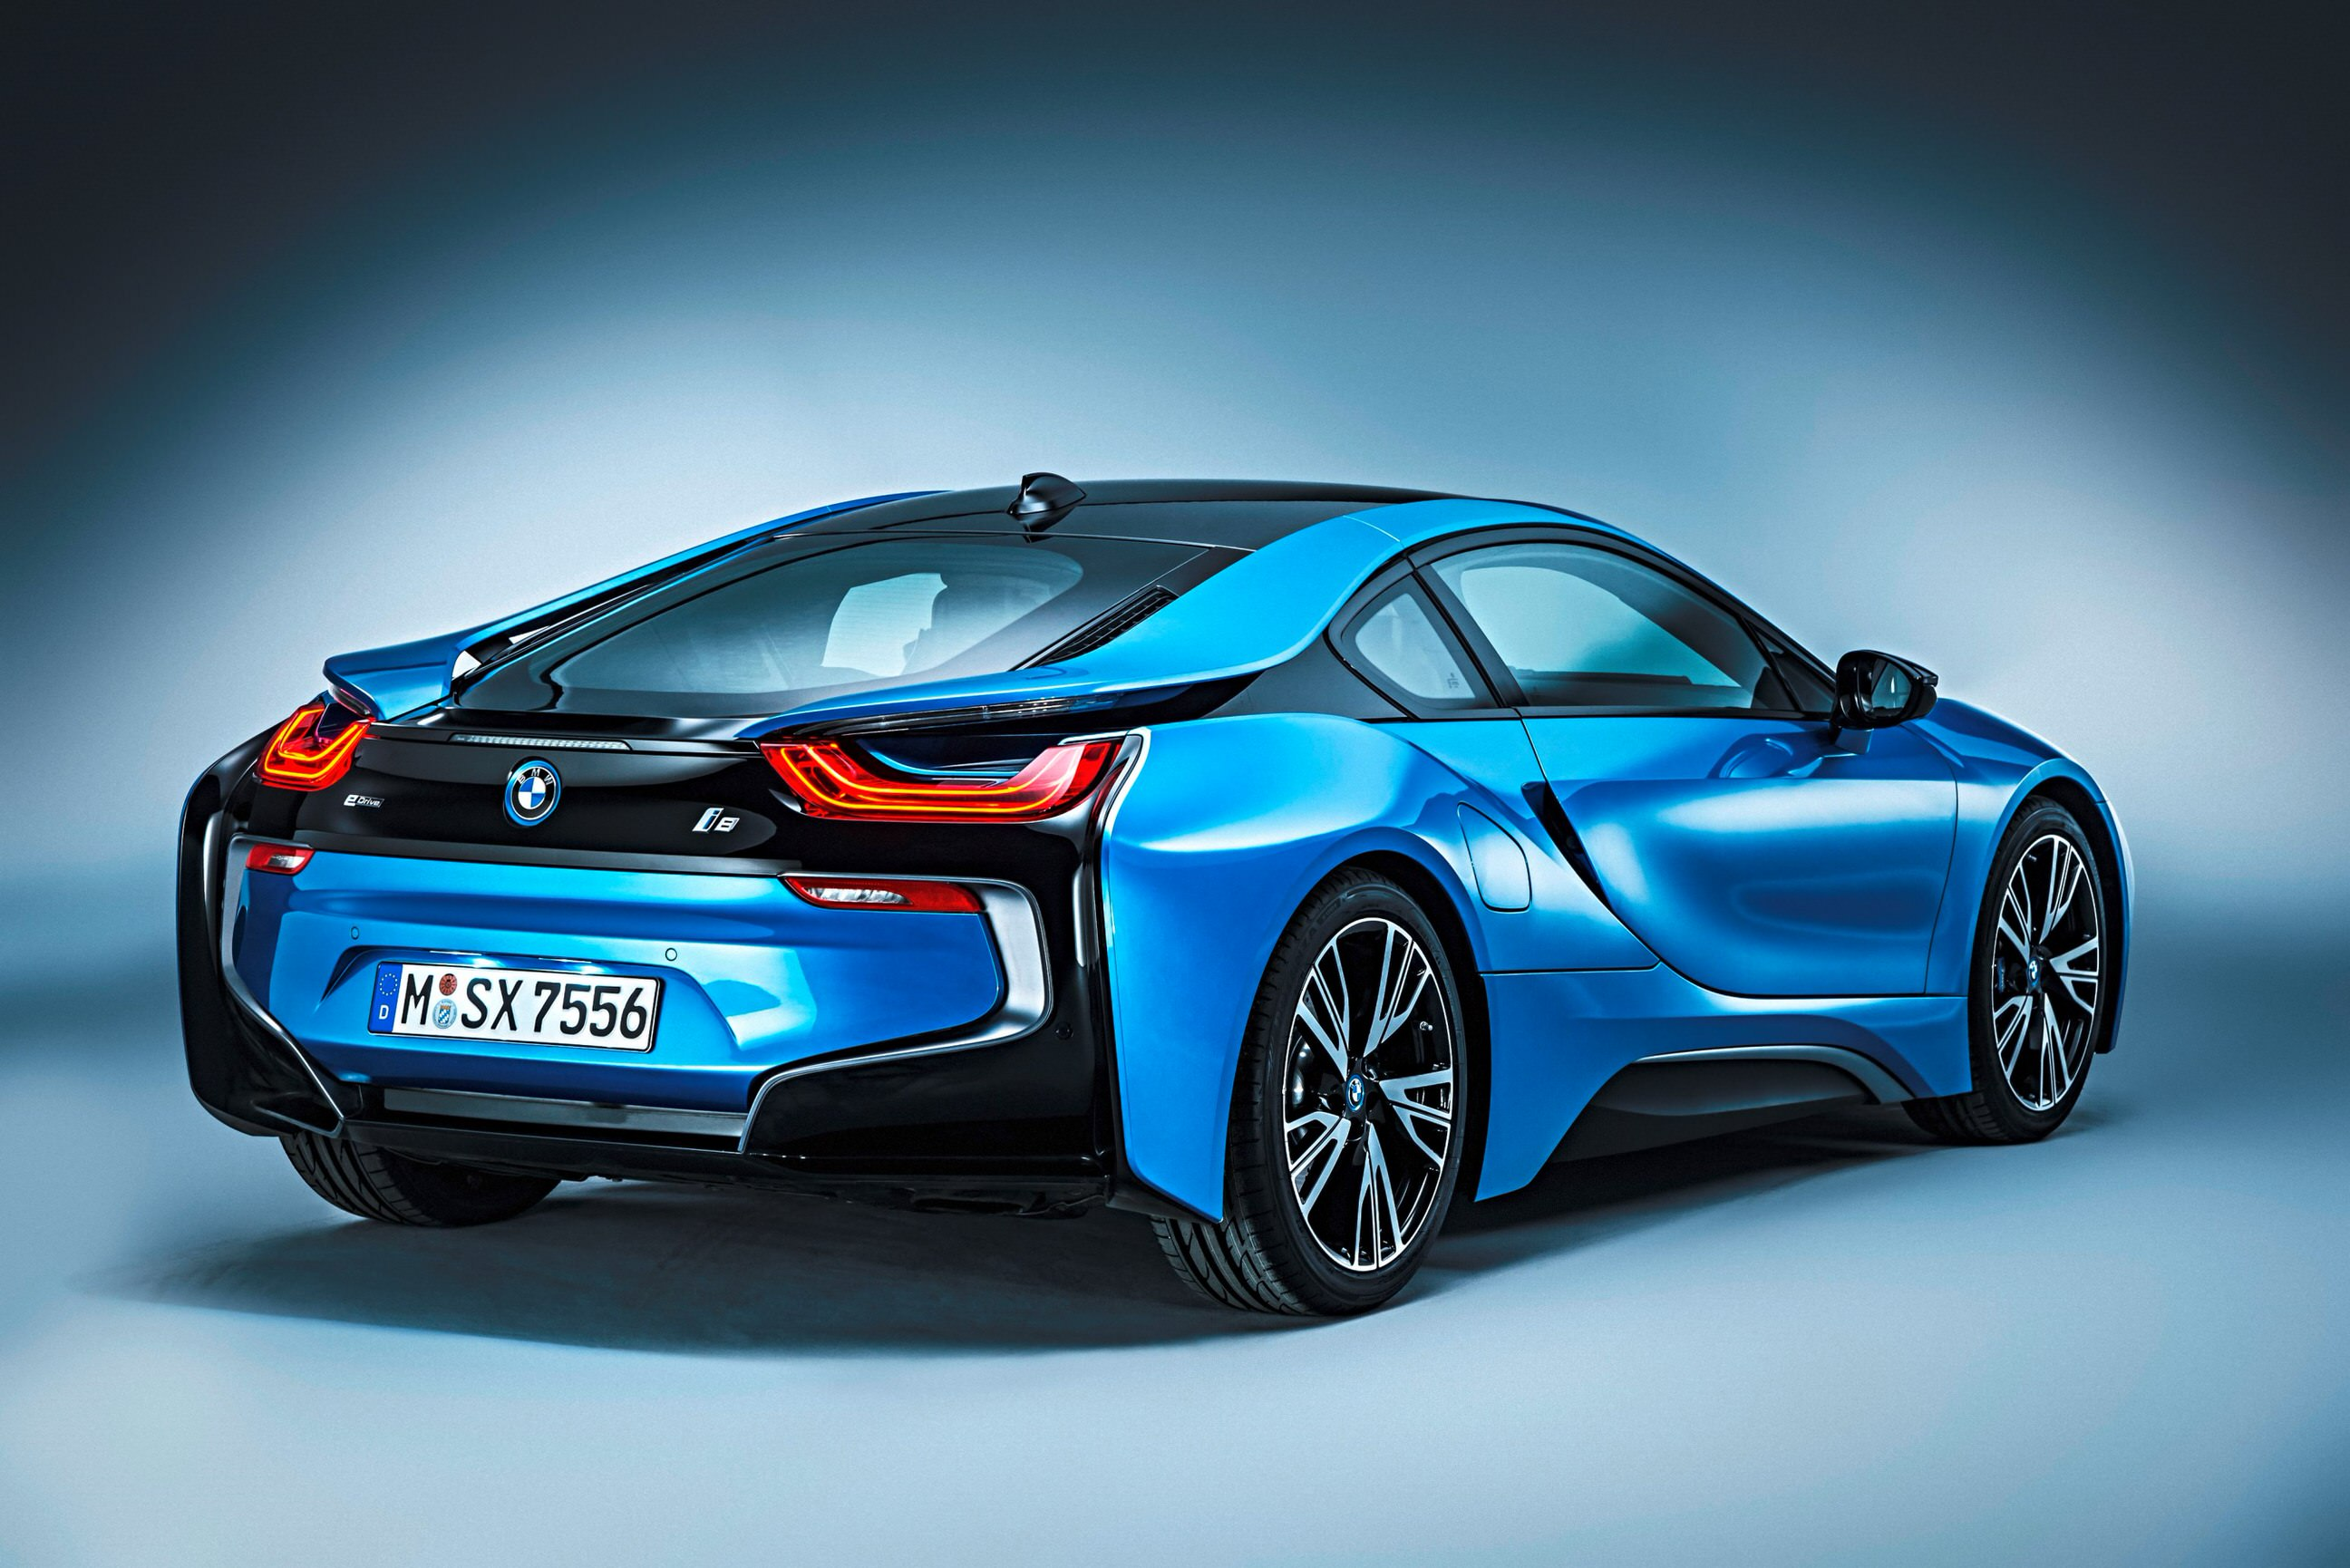 bmw i8 sportwagen hybrid elektro konzept details 6 bmw. Black Bedroom Furniture Sets. Home Design Ideas